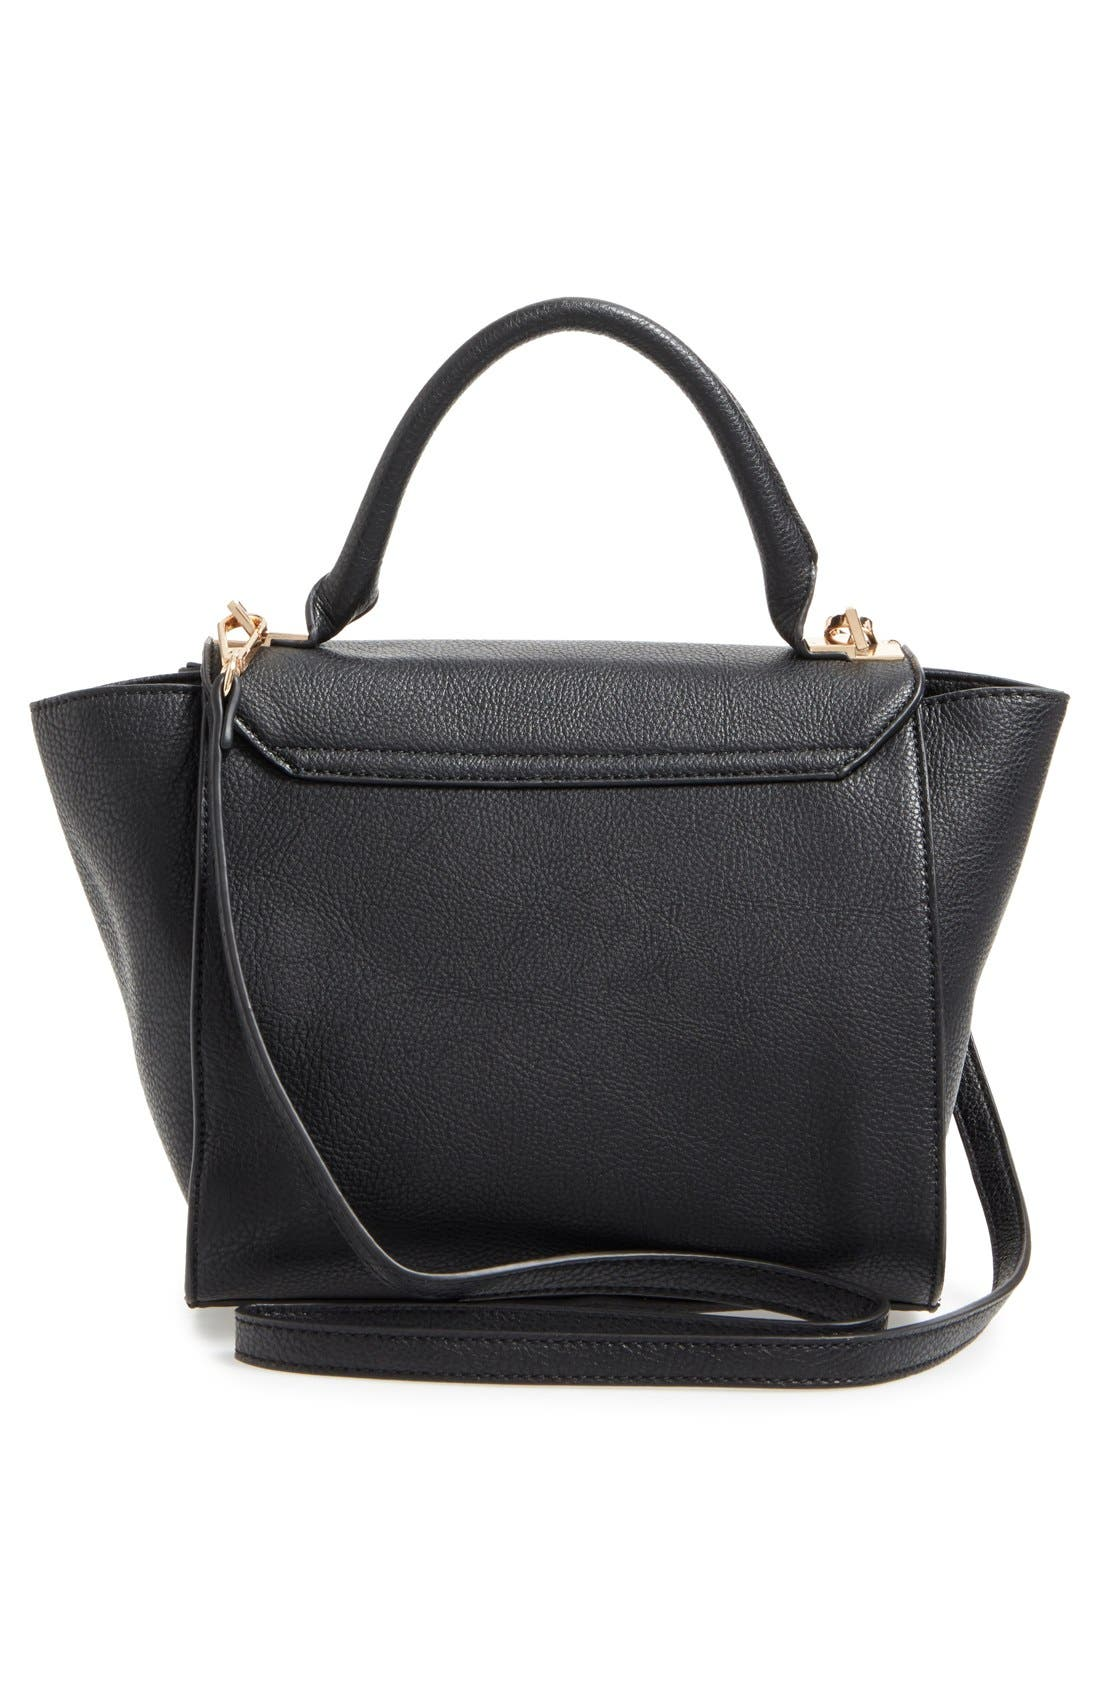 Alternate Image 3  - Sole Society 'Kimmi' Top Handle Satchel